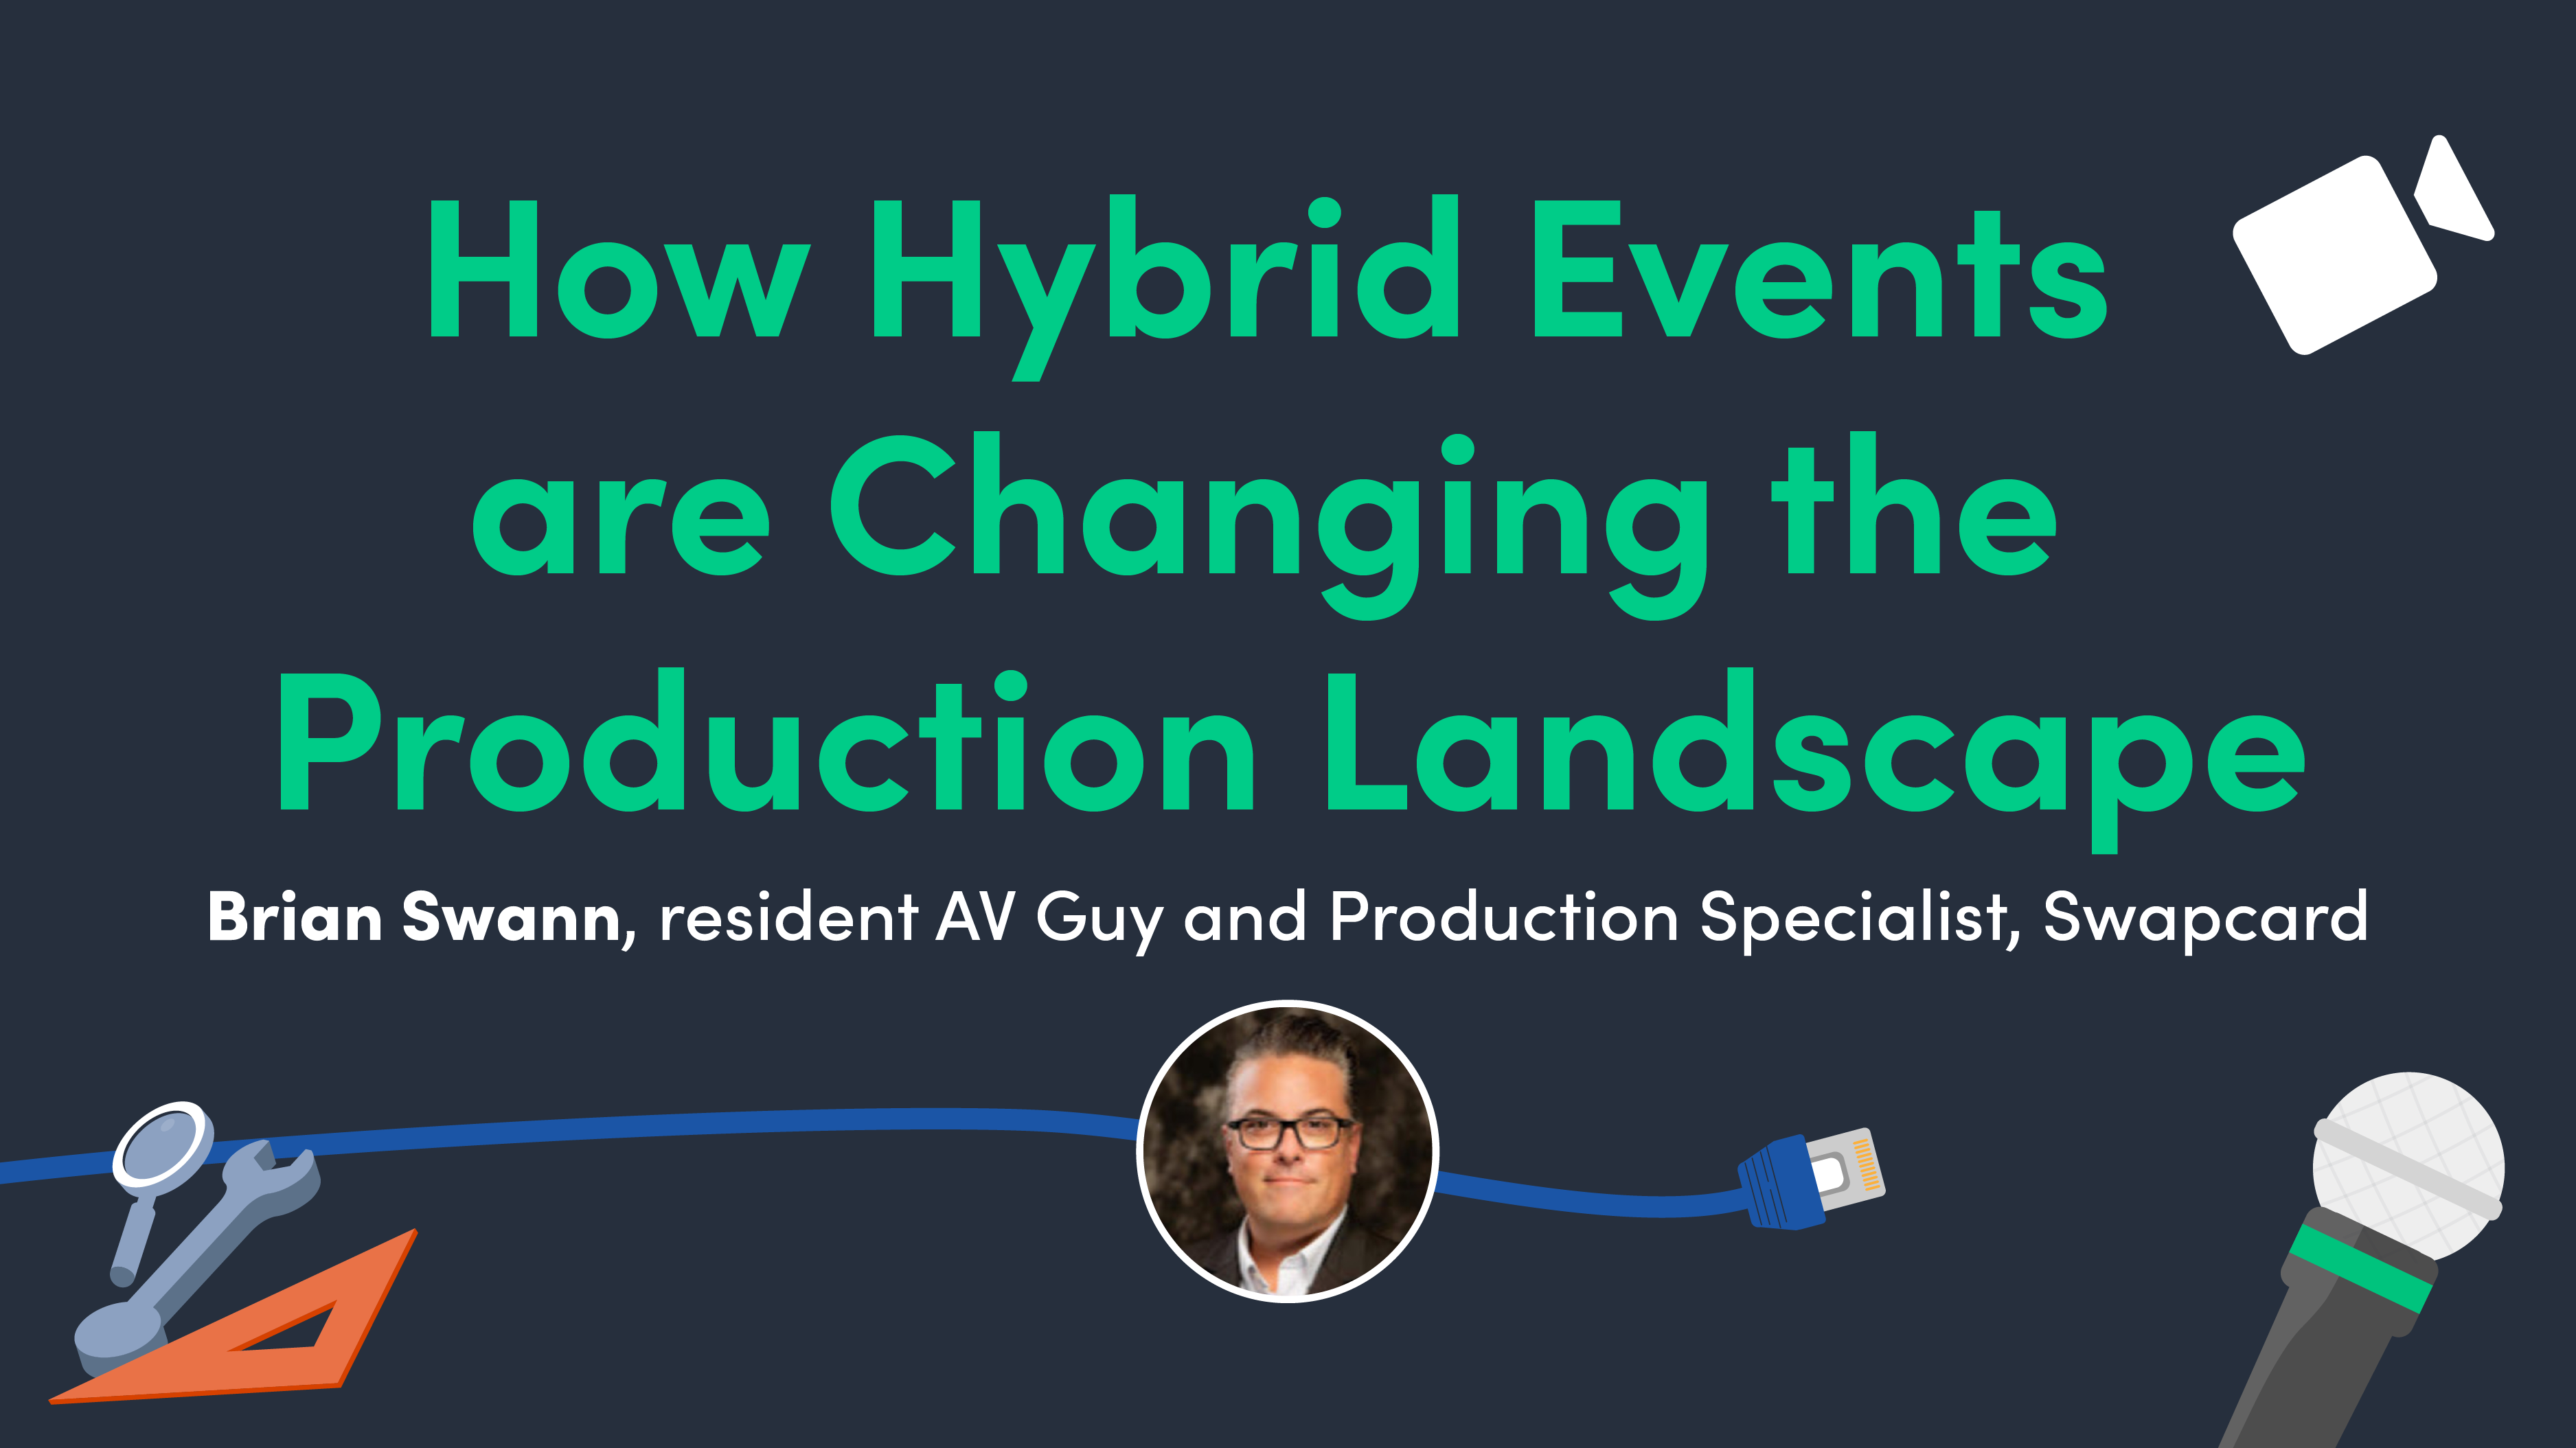 How Hybrid Events are Changing the Production Landscape